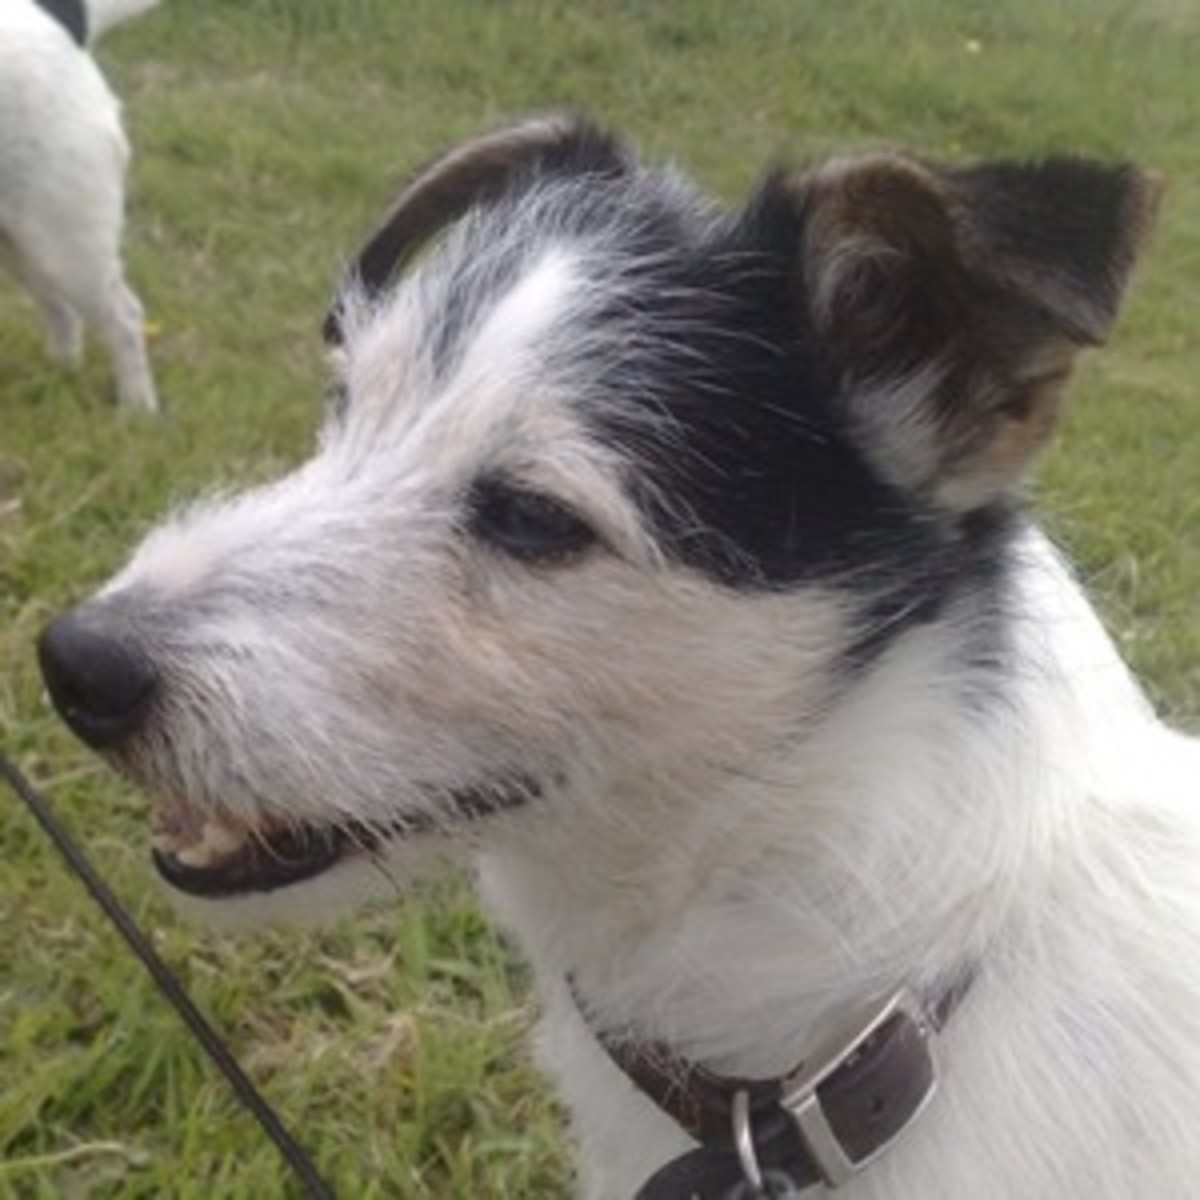 Our Jack Russell 'Murdoch' who lived to the age of 16 years, 8 months!